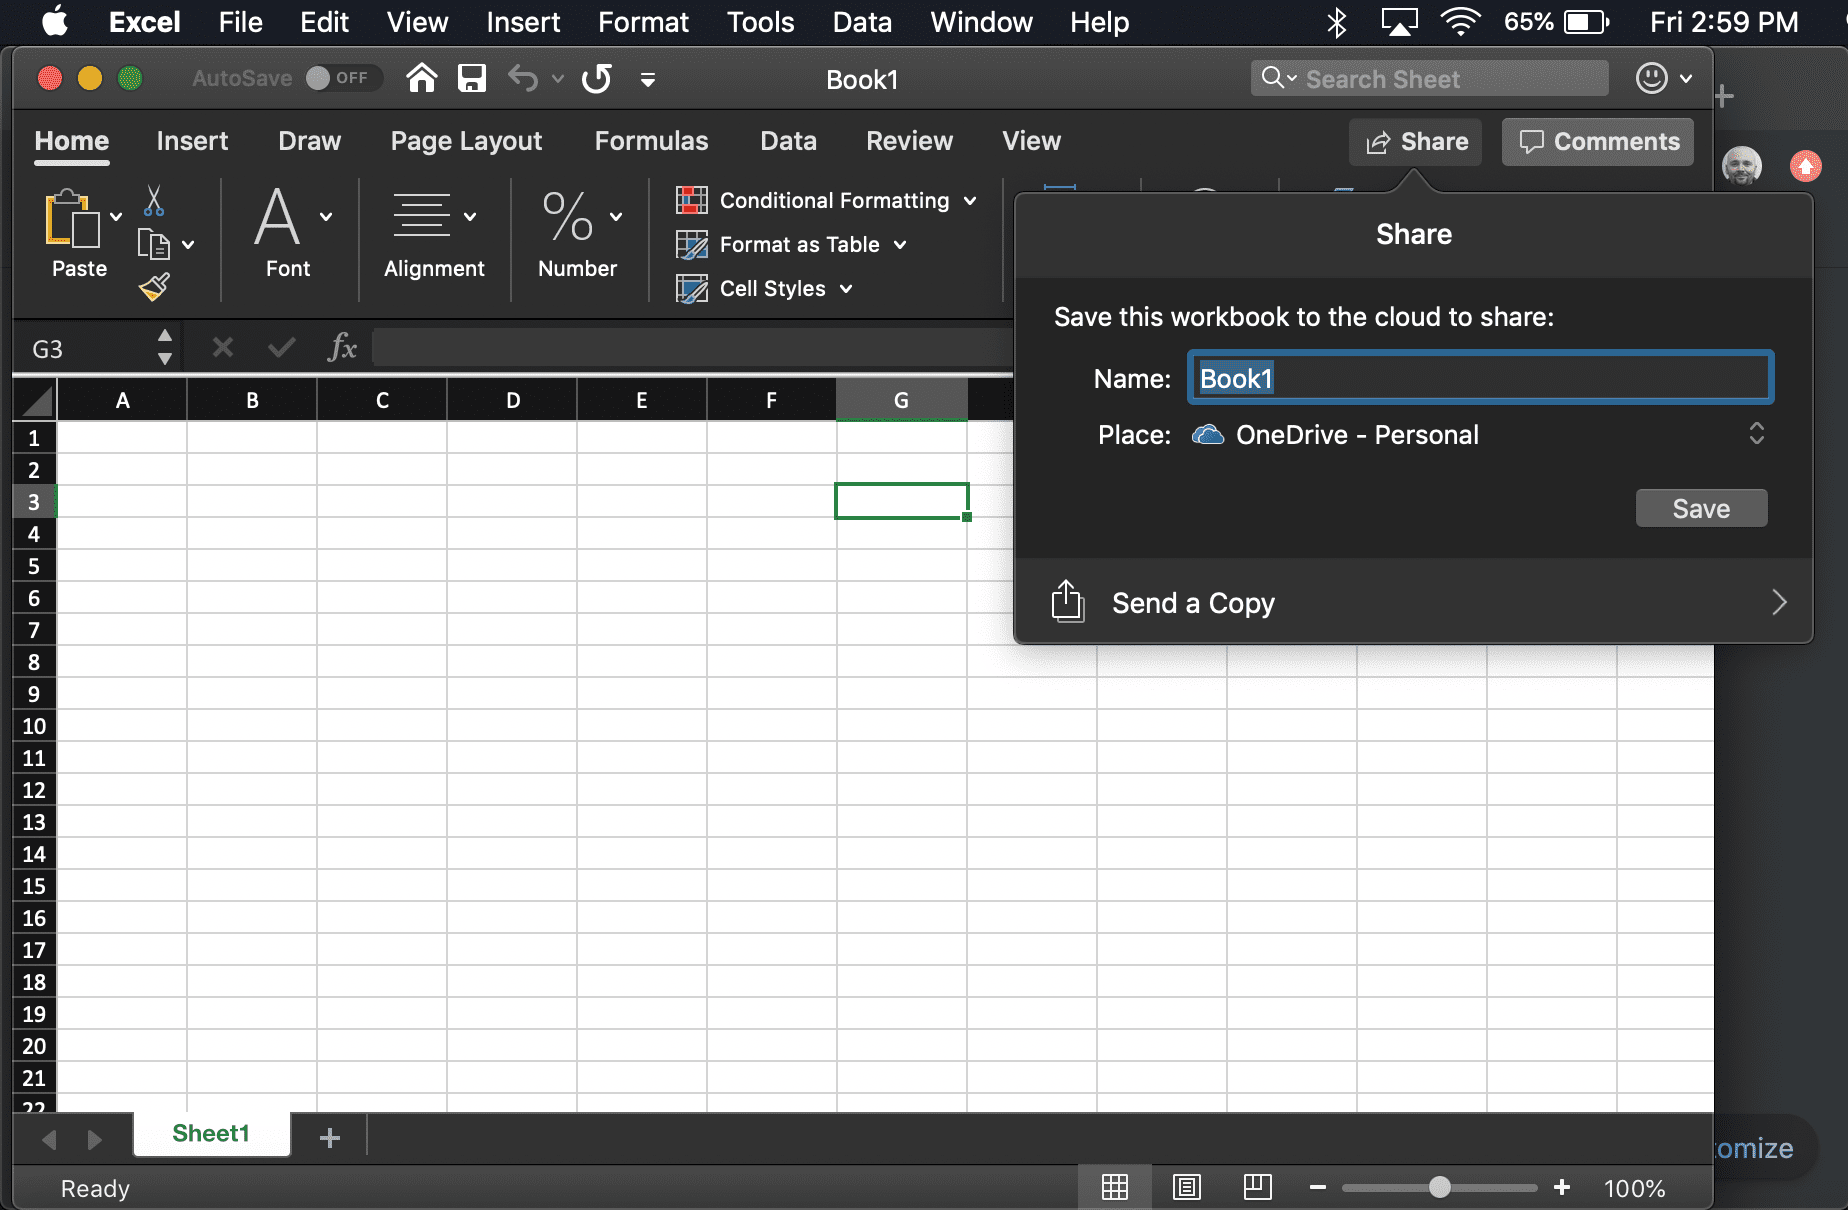 screenshot of the Excel Share window